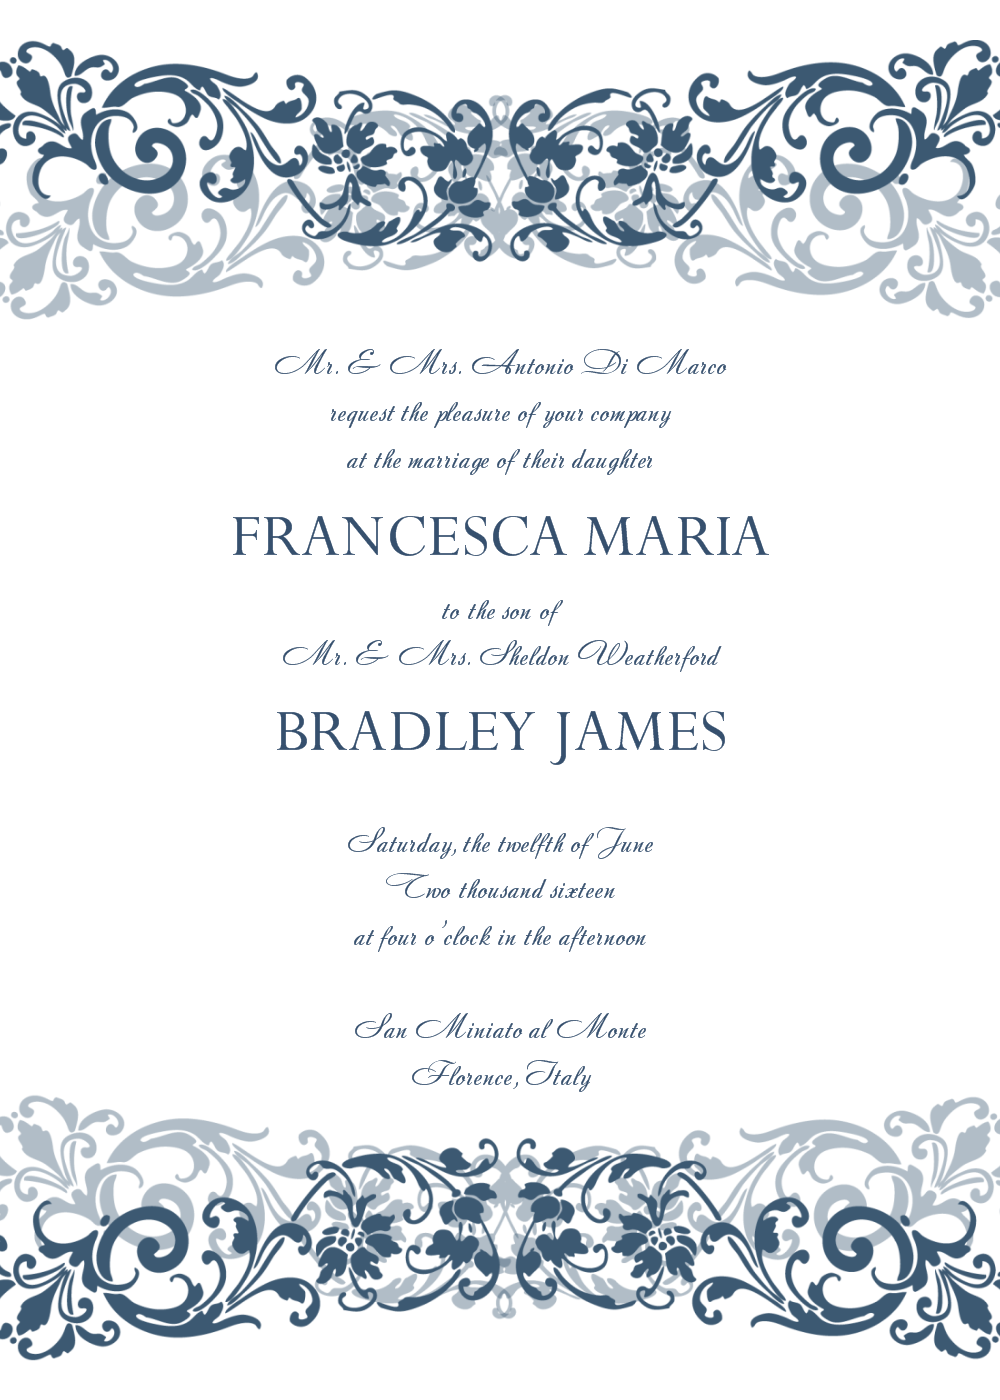 Free Wedding Invitation Templates For Wor Wedding Invitations Printable Templates Free Printable Wedding Invitation Templates Free Wedding Invitation Templates